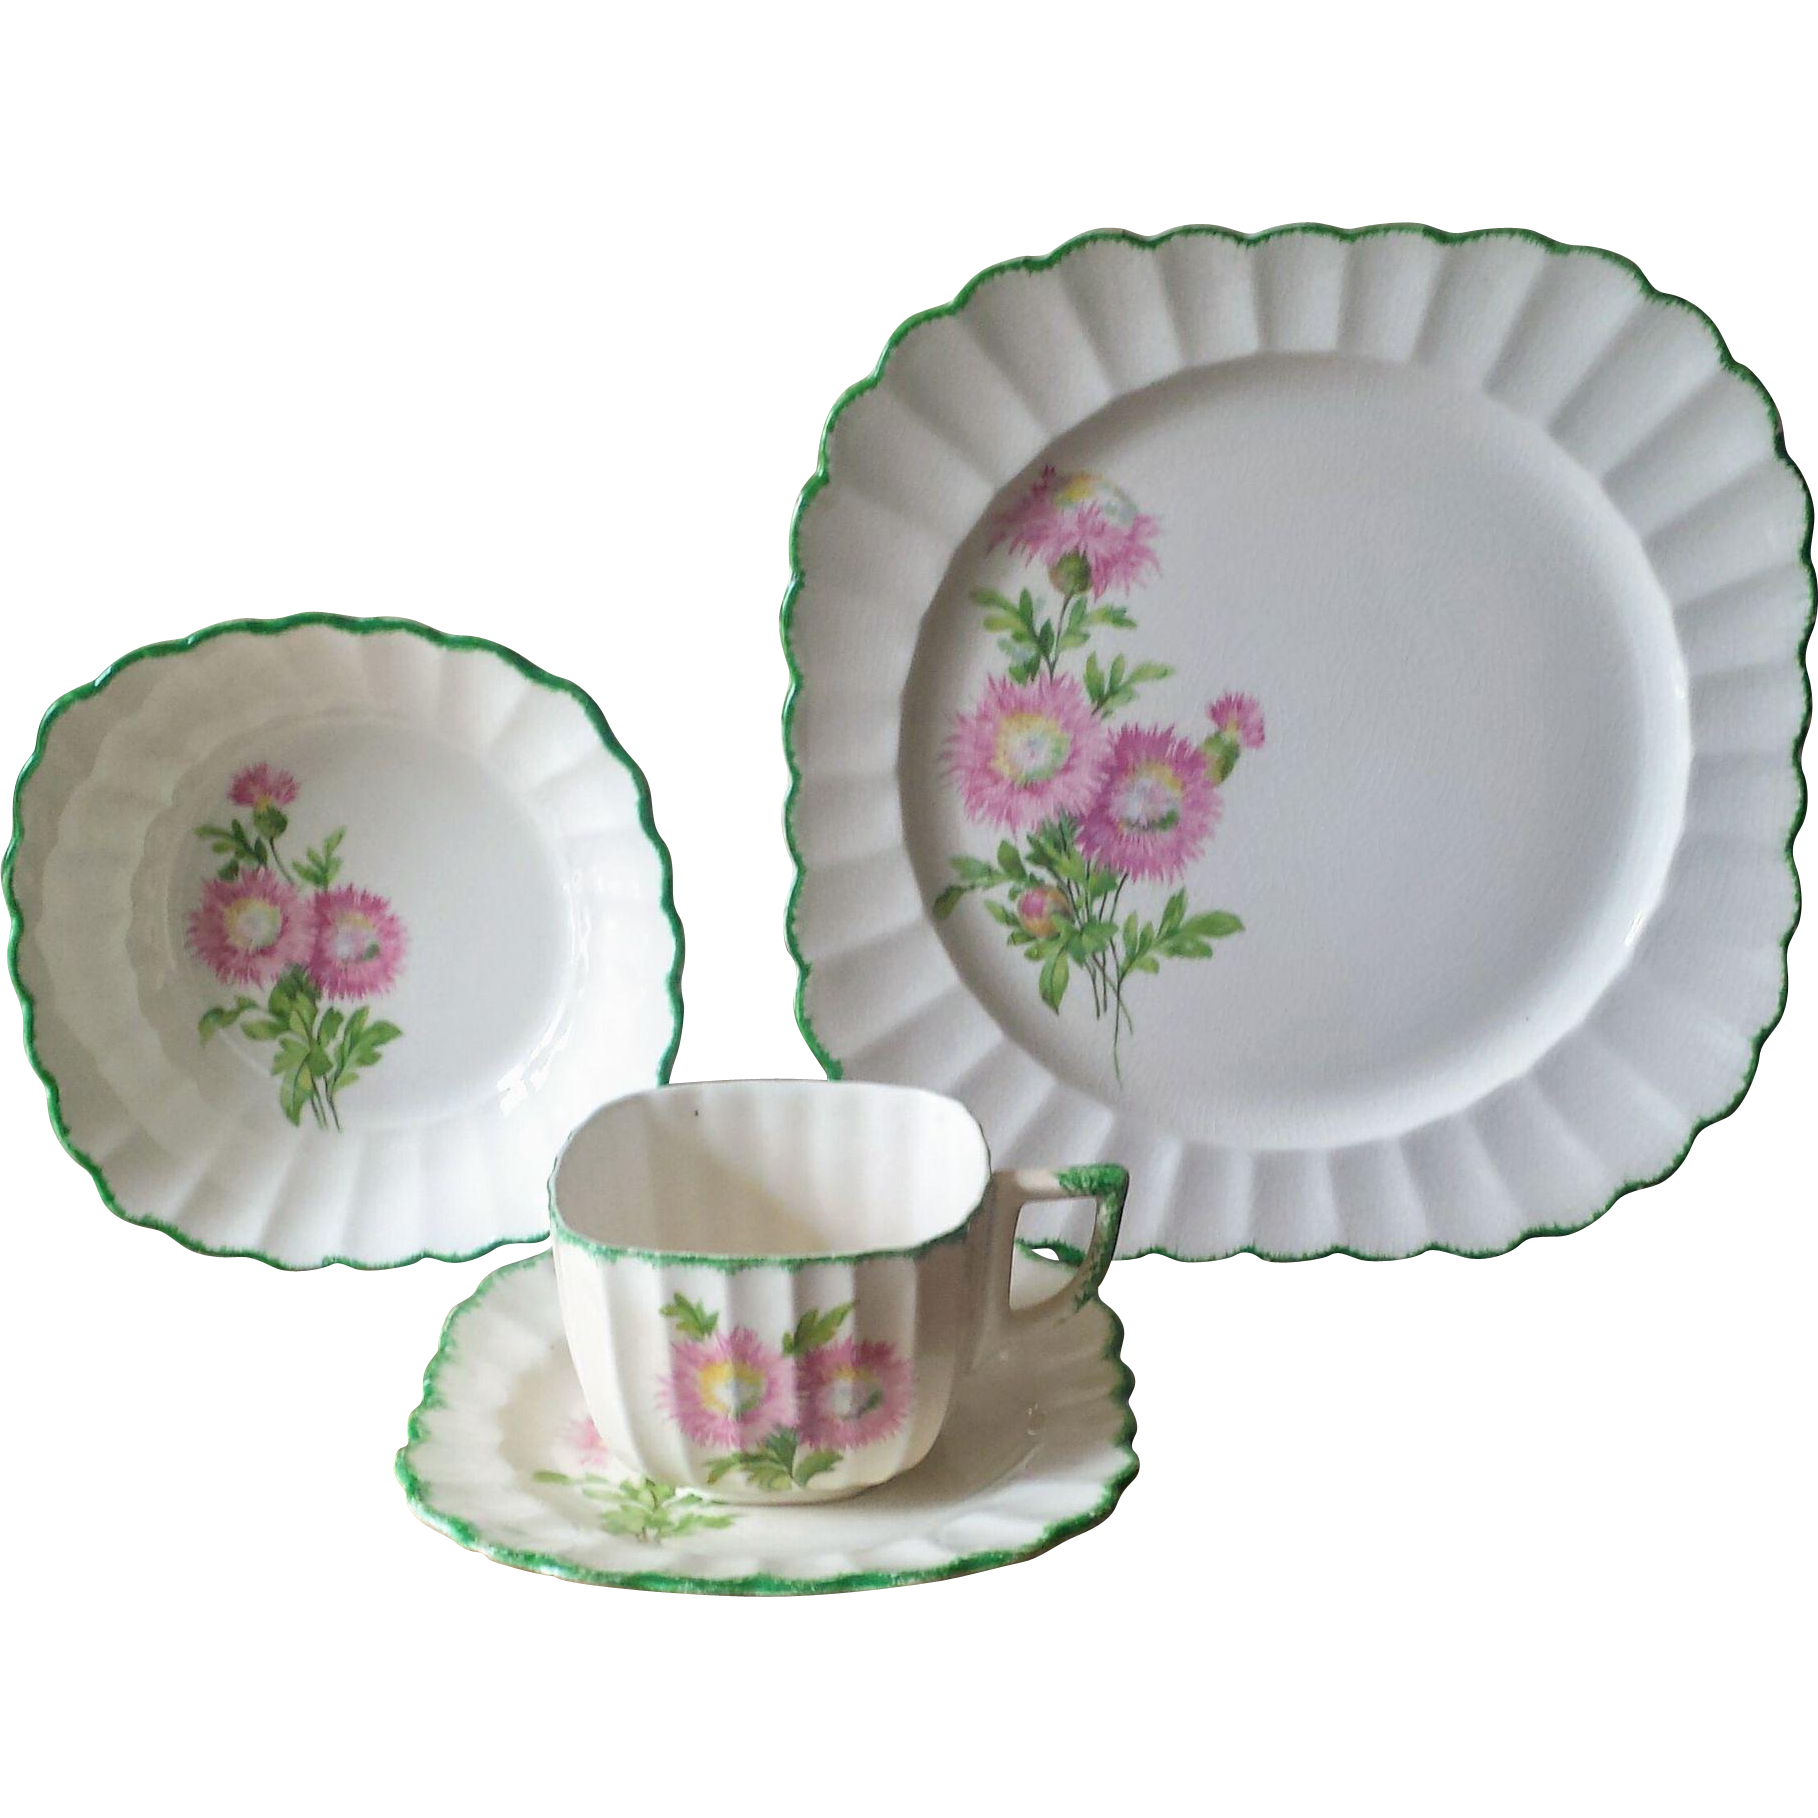 Vintage 1930s Sebring Pottery Fluted and Feathered Floral Luncheon Set